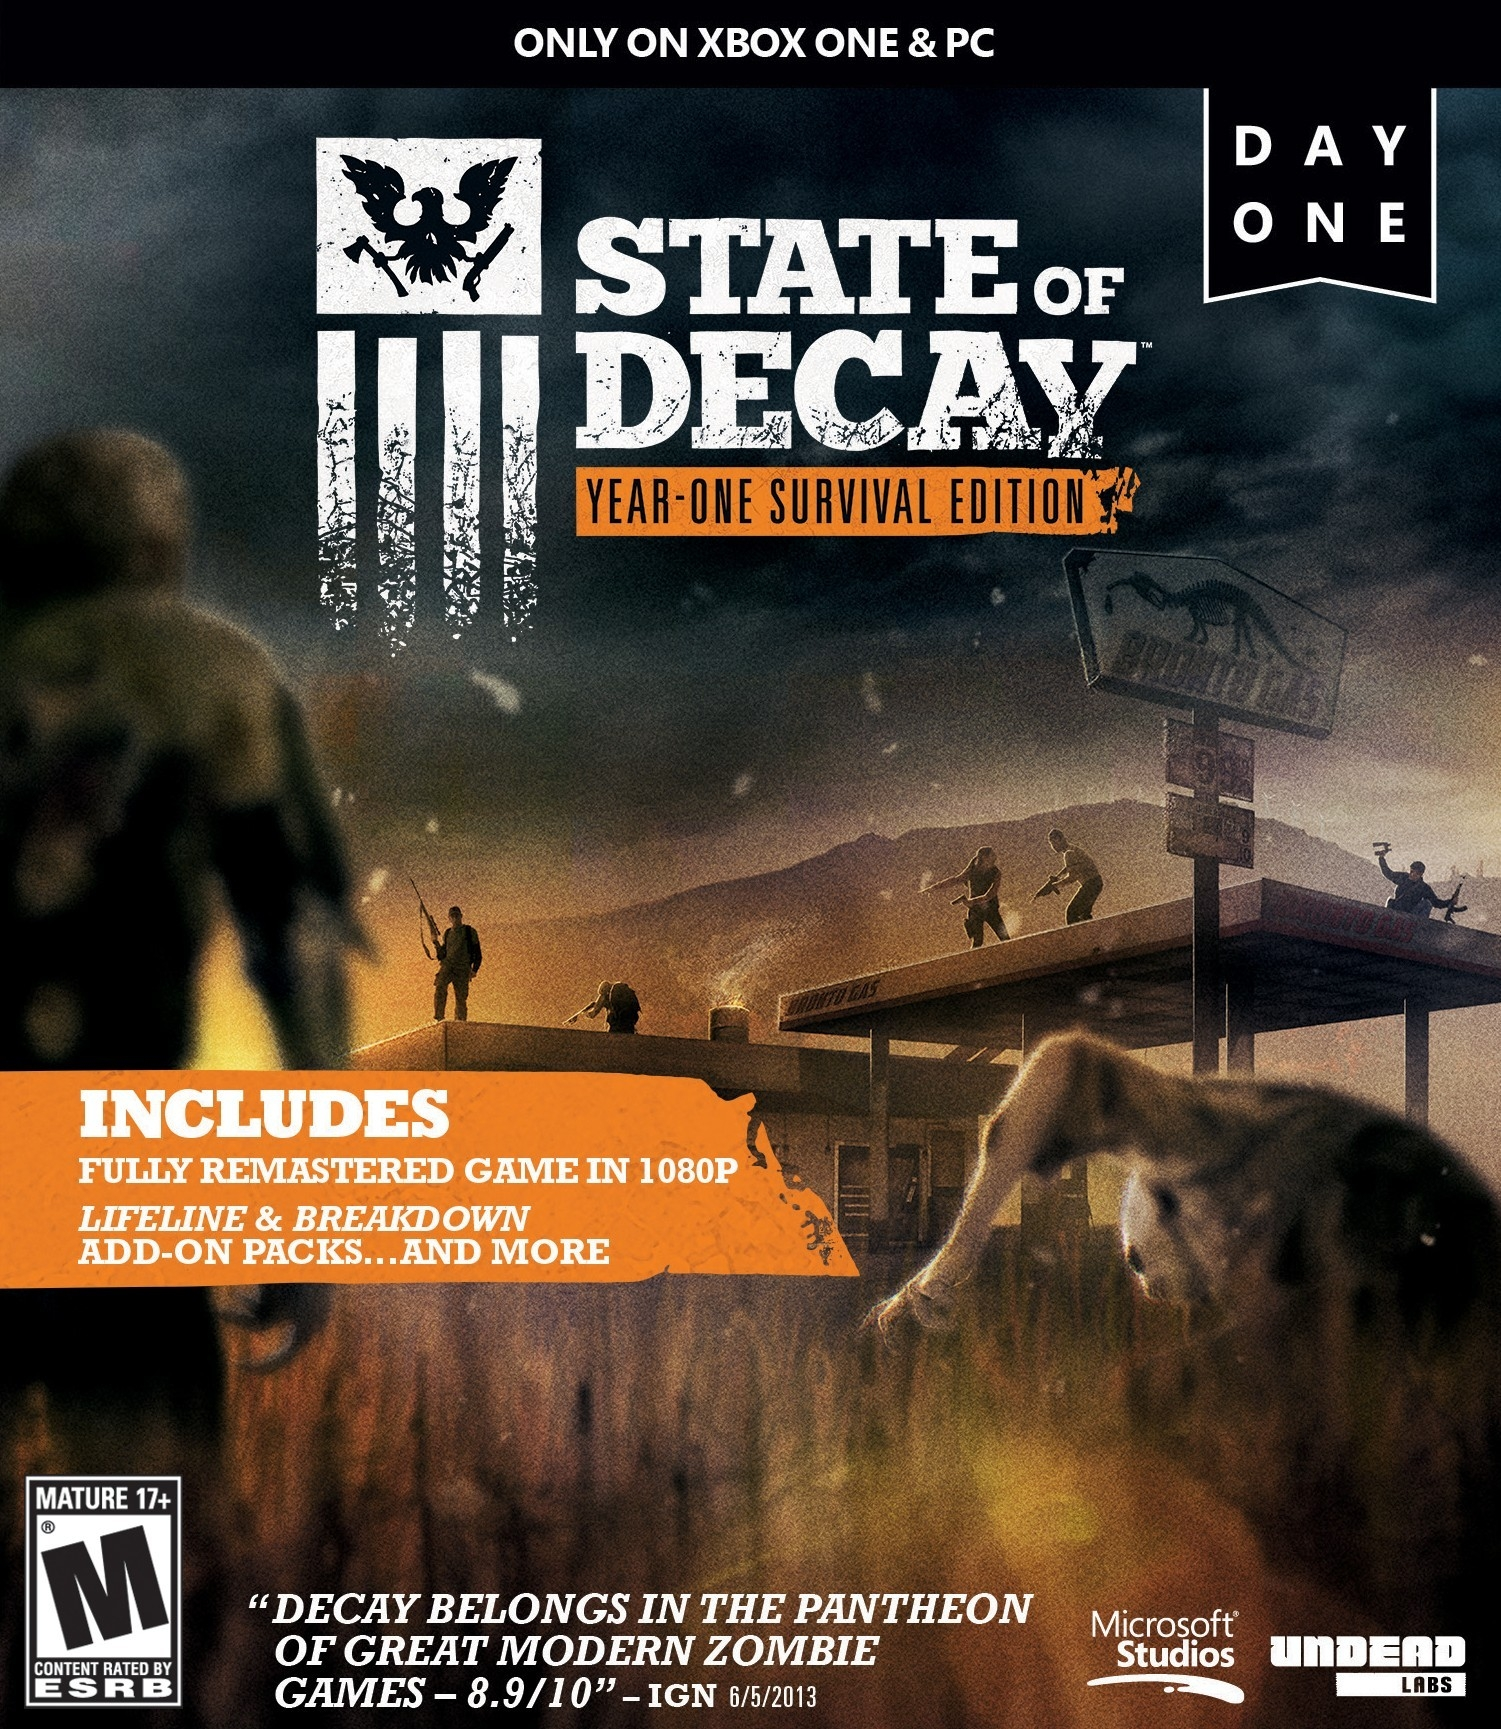 State of Decay Year-One Survival Edition Download